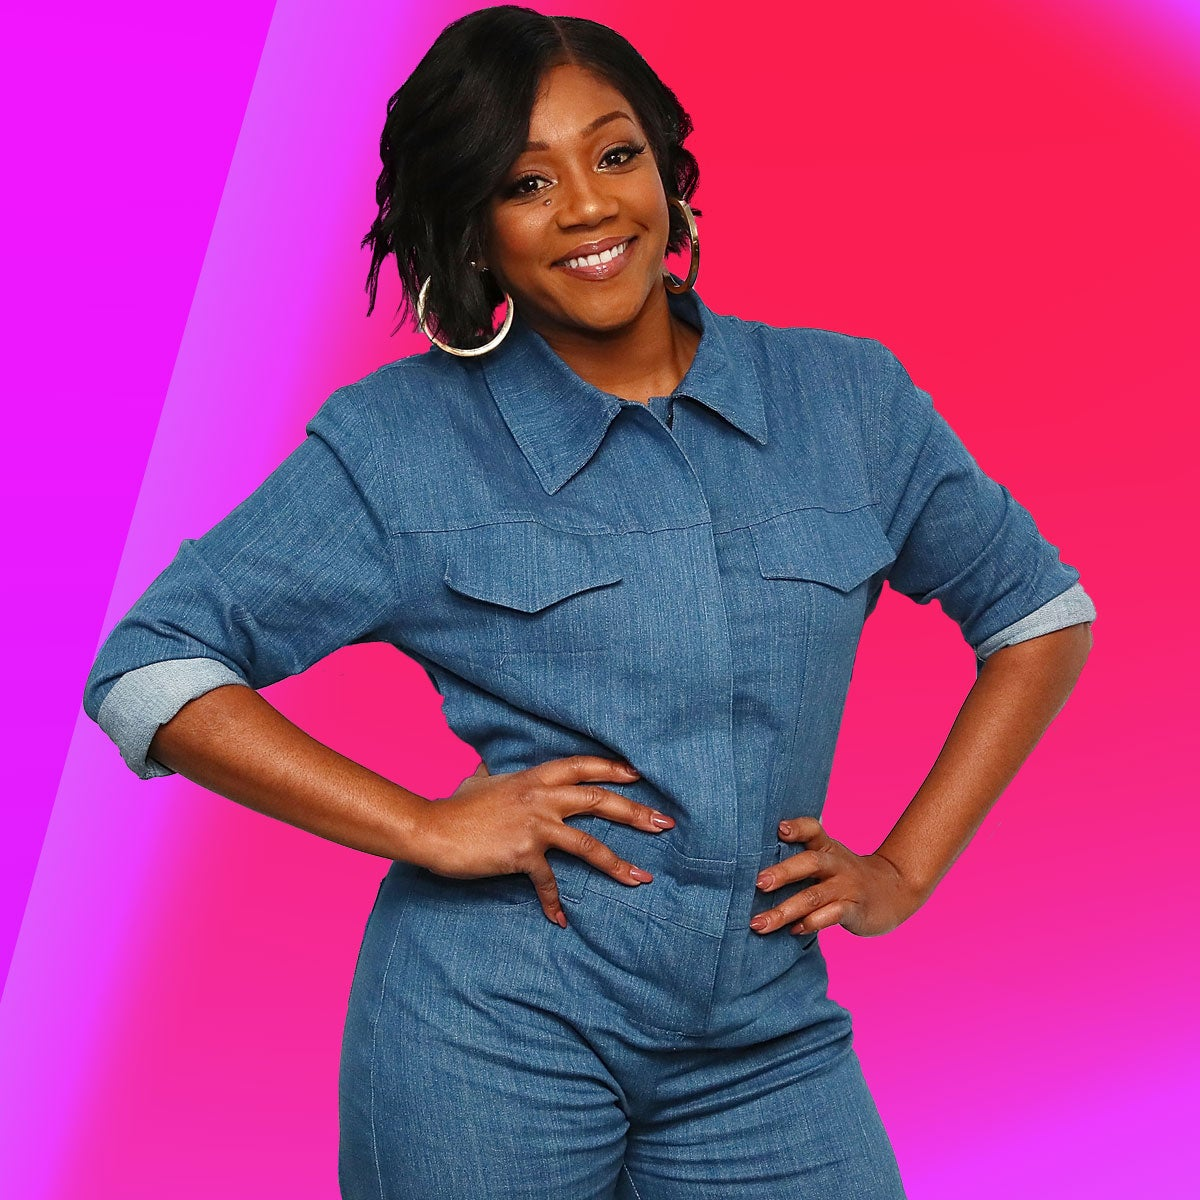 Tiffany Haddish Breaks Silence After Bombing Stand-Up Comedy Set